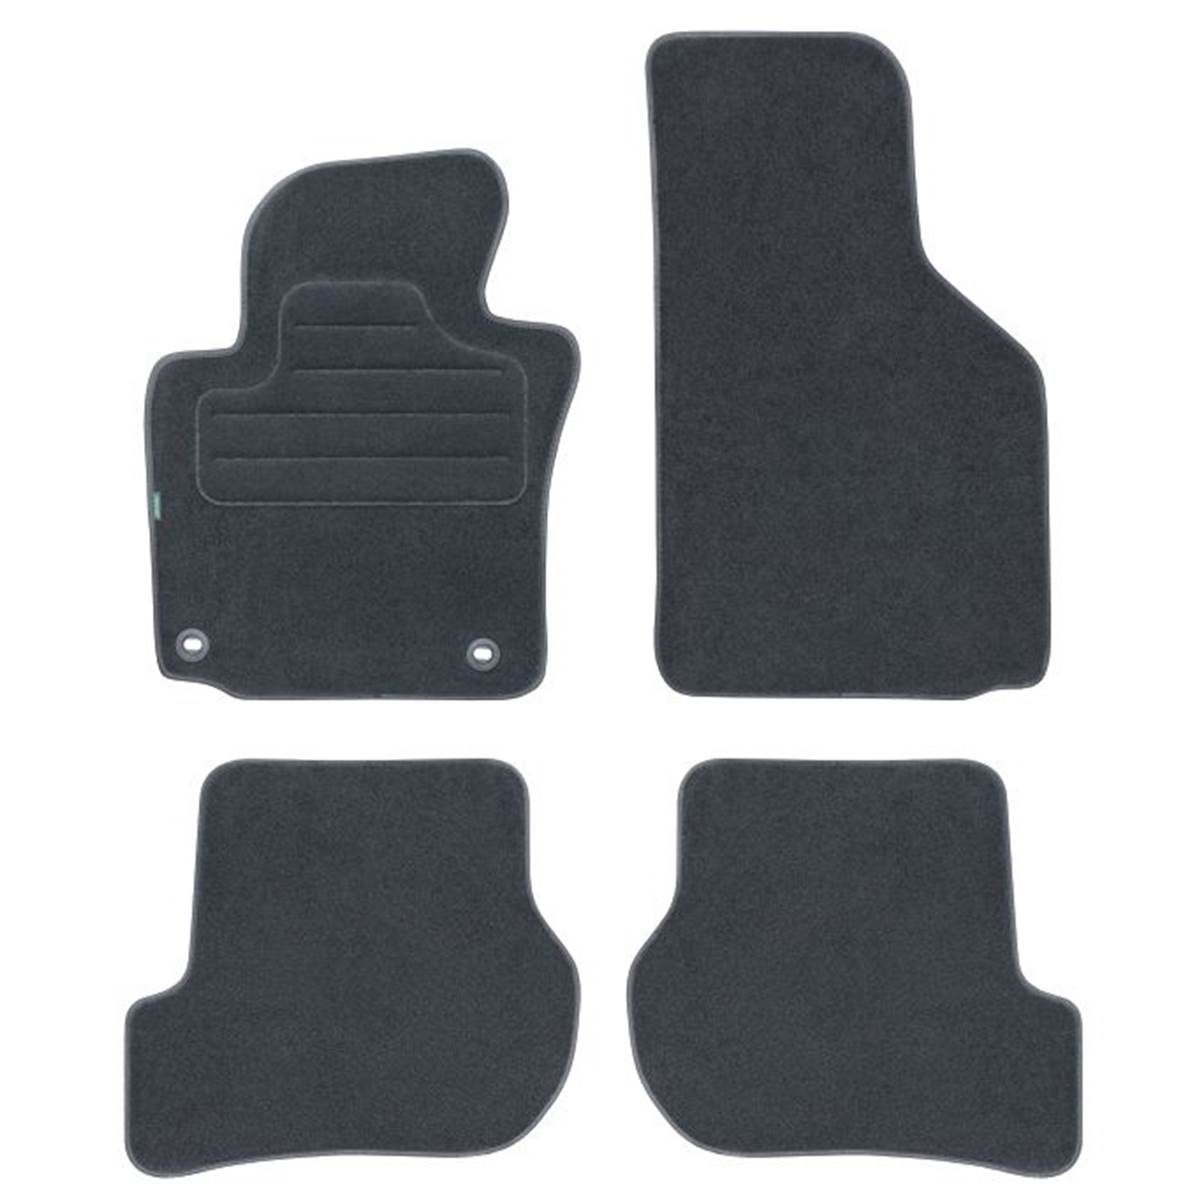 4 tapis de voiture moquette pour volkswagen golf version 5 et coup. Black Bedroom Furniture Sets. Home Design Ideas